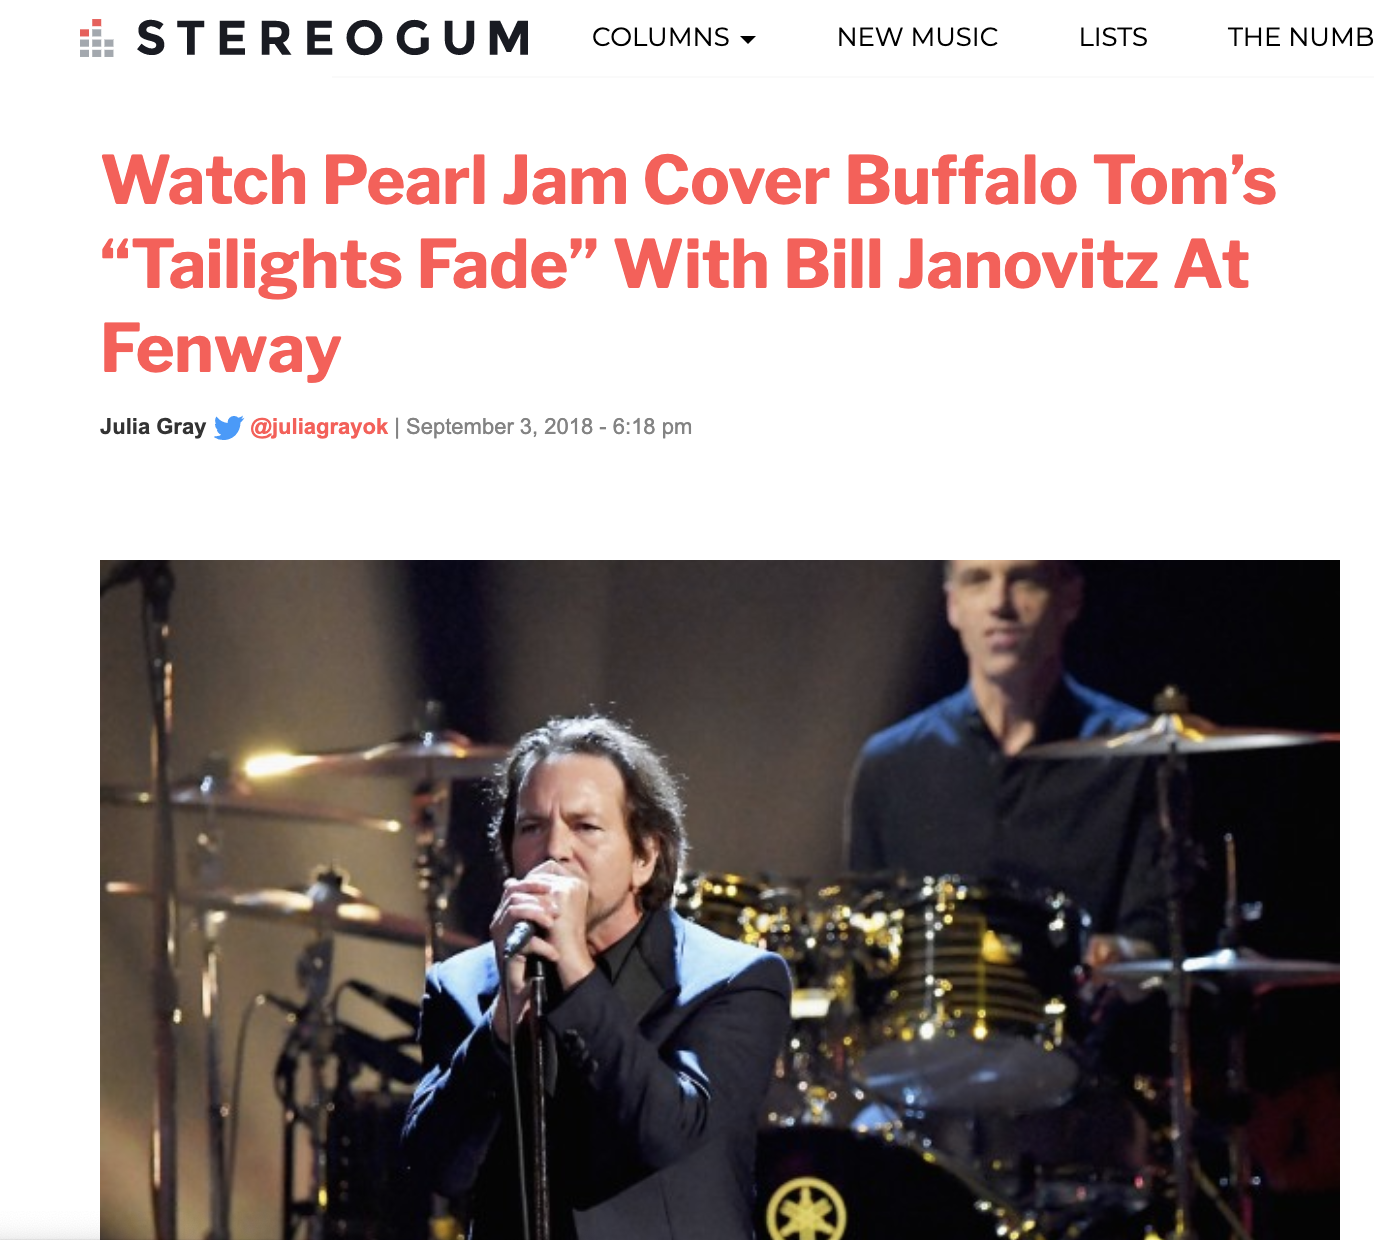 "Watch Pearl Jam Cover Buffalo Tom's ""Tailights Fade"" With Bill Janovitz At Fenway"